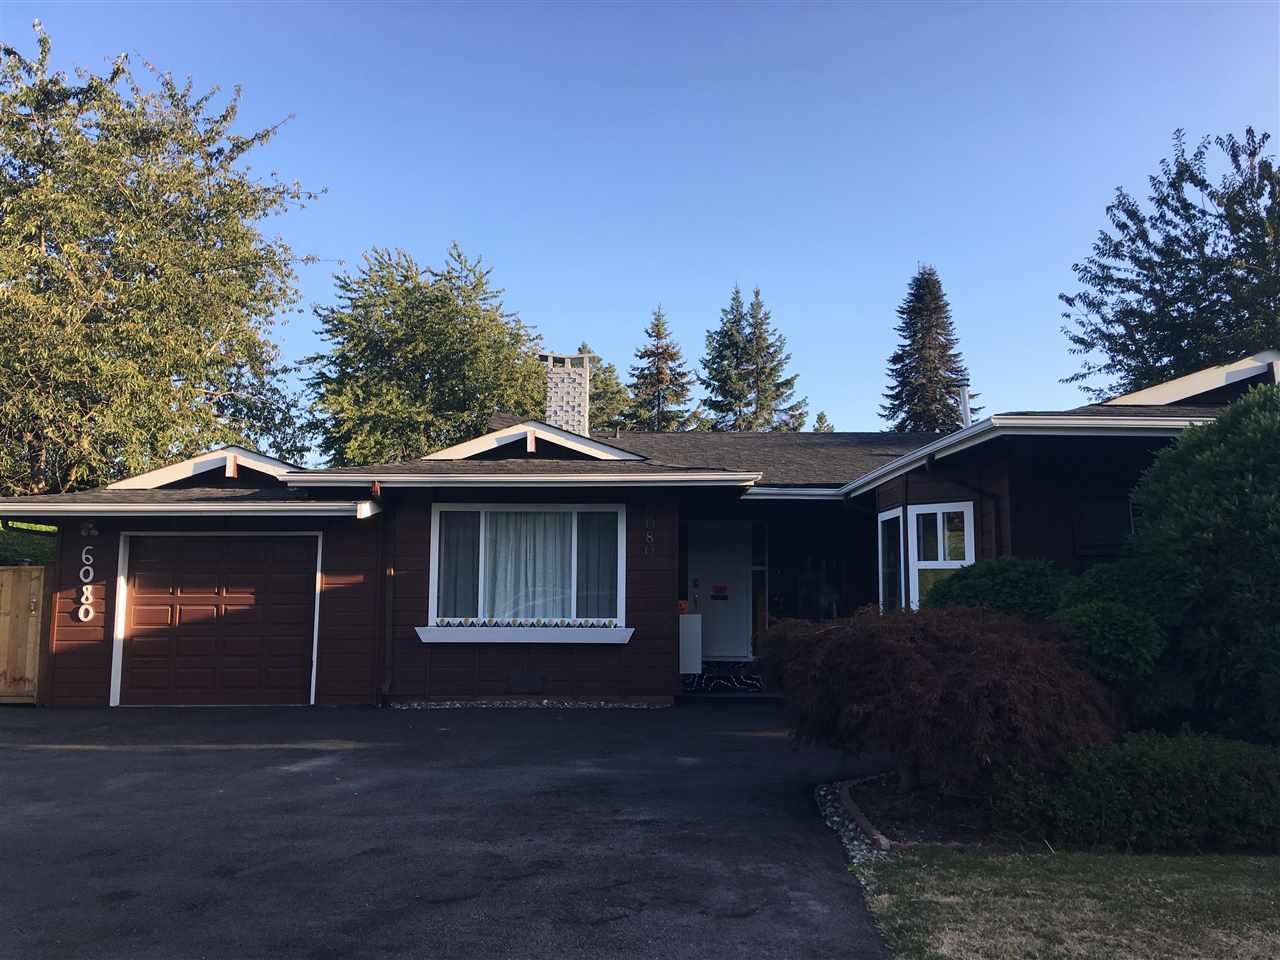 Richmond Center Location! Quite and beautiful Granville area, new renovated rancher house with 6203sf lot. Total 2172 sf living spaces, features 4 bdrms, 3 baths, plus a 1 bdrm legal suite that is tenanted for $1200. Recently renovated in 2016, including new fence, new driveway, painting inside, bathroom, laminate floor. Close to everything. Walking distance to Rmd Center Mall, community center, library , and Rmd Hosipital. Top ranking school catchment: Brighouse elementary and Richmond Secondary. Perfect for invest, live or rebuilt. Call us today to book private showing.